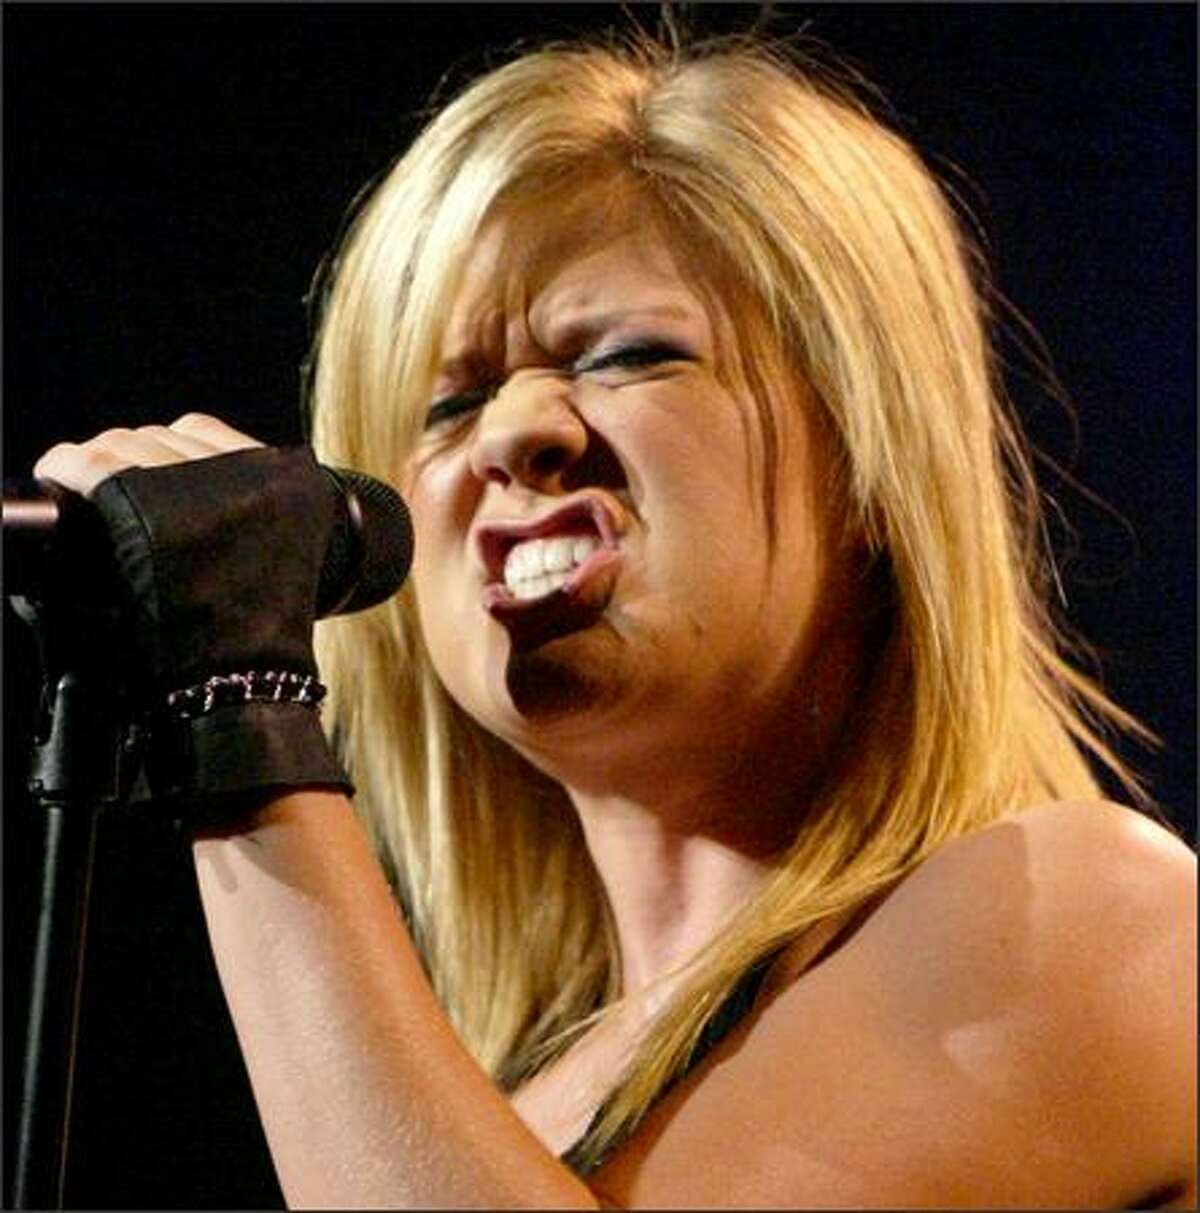 Kelly Clarkson performs at the Paramount.